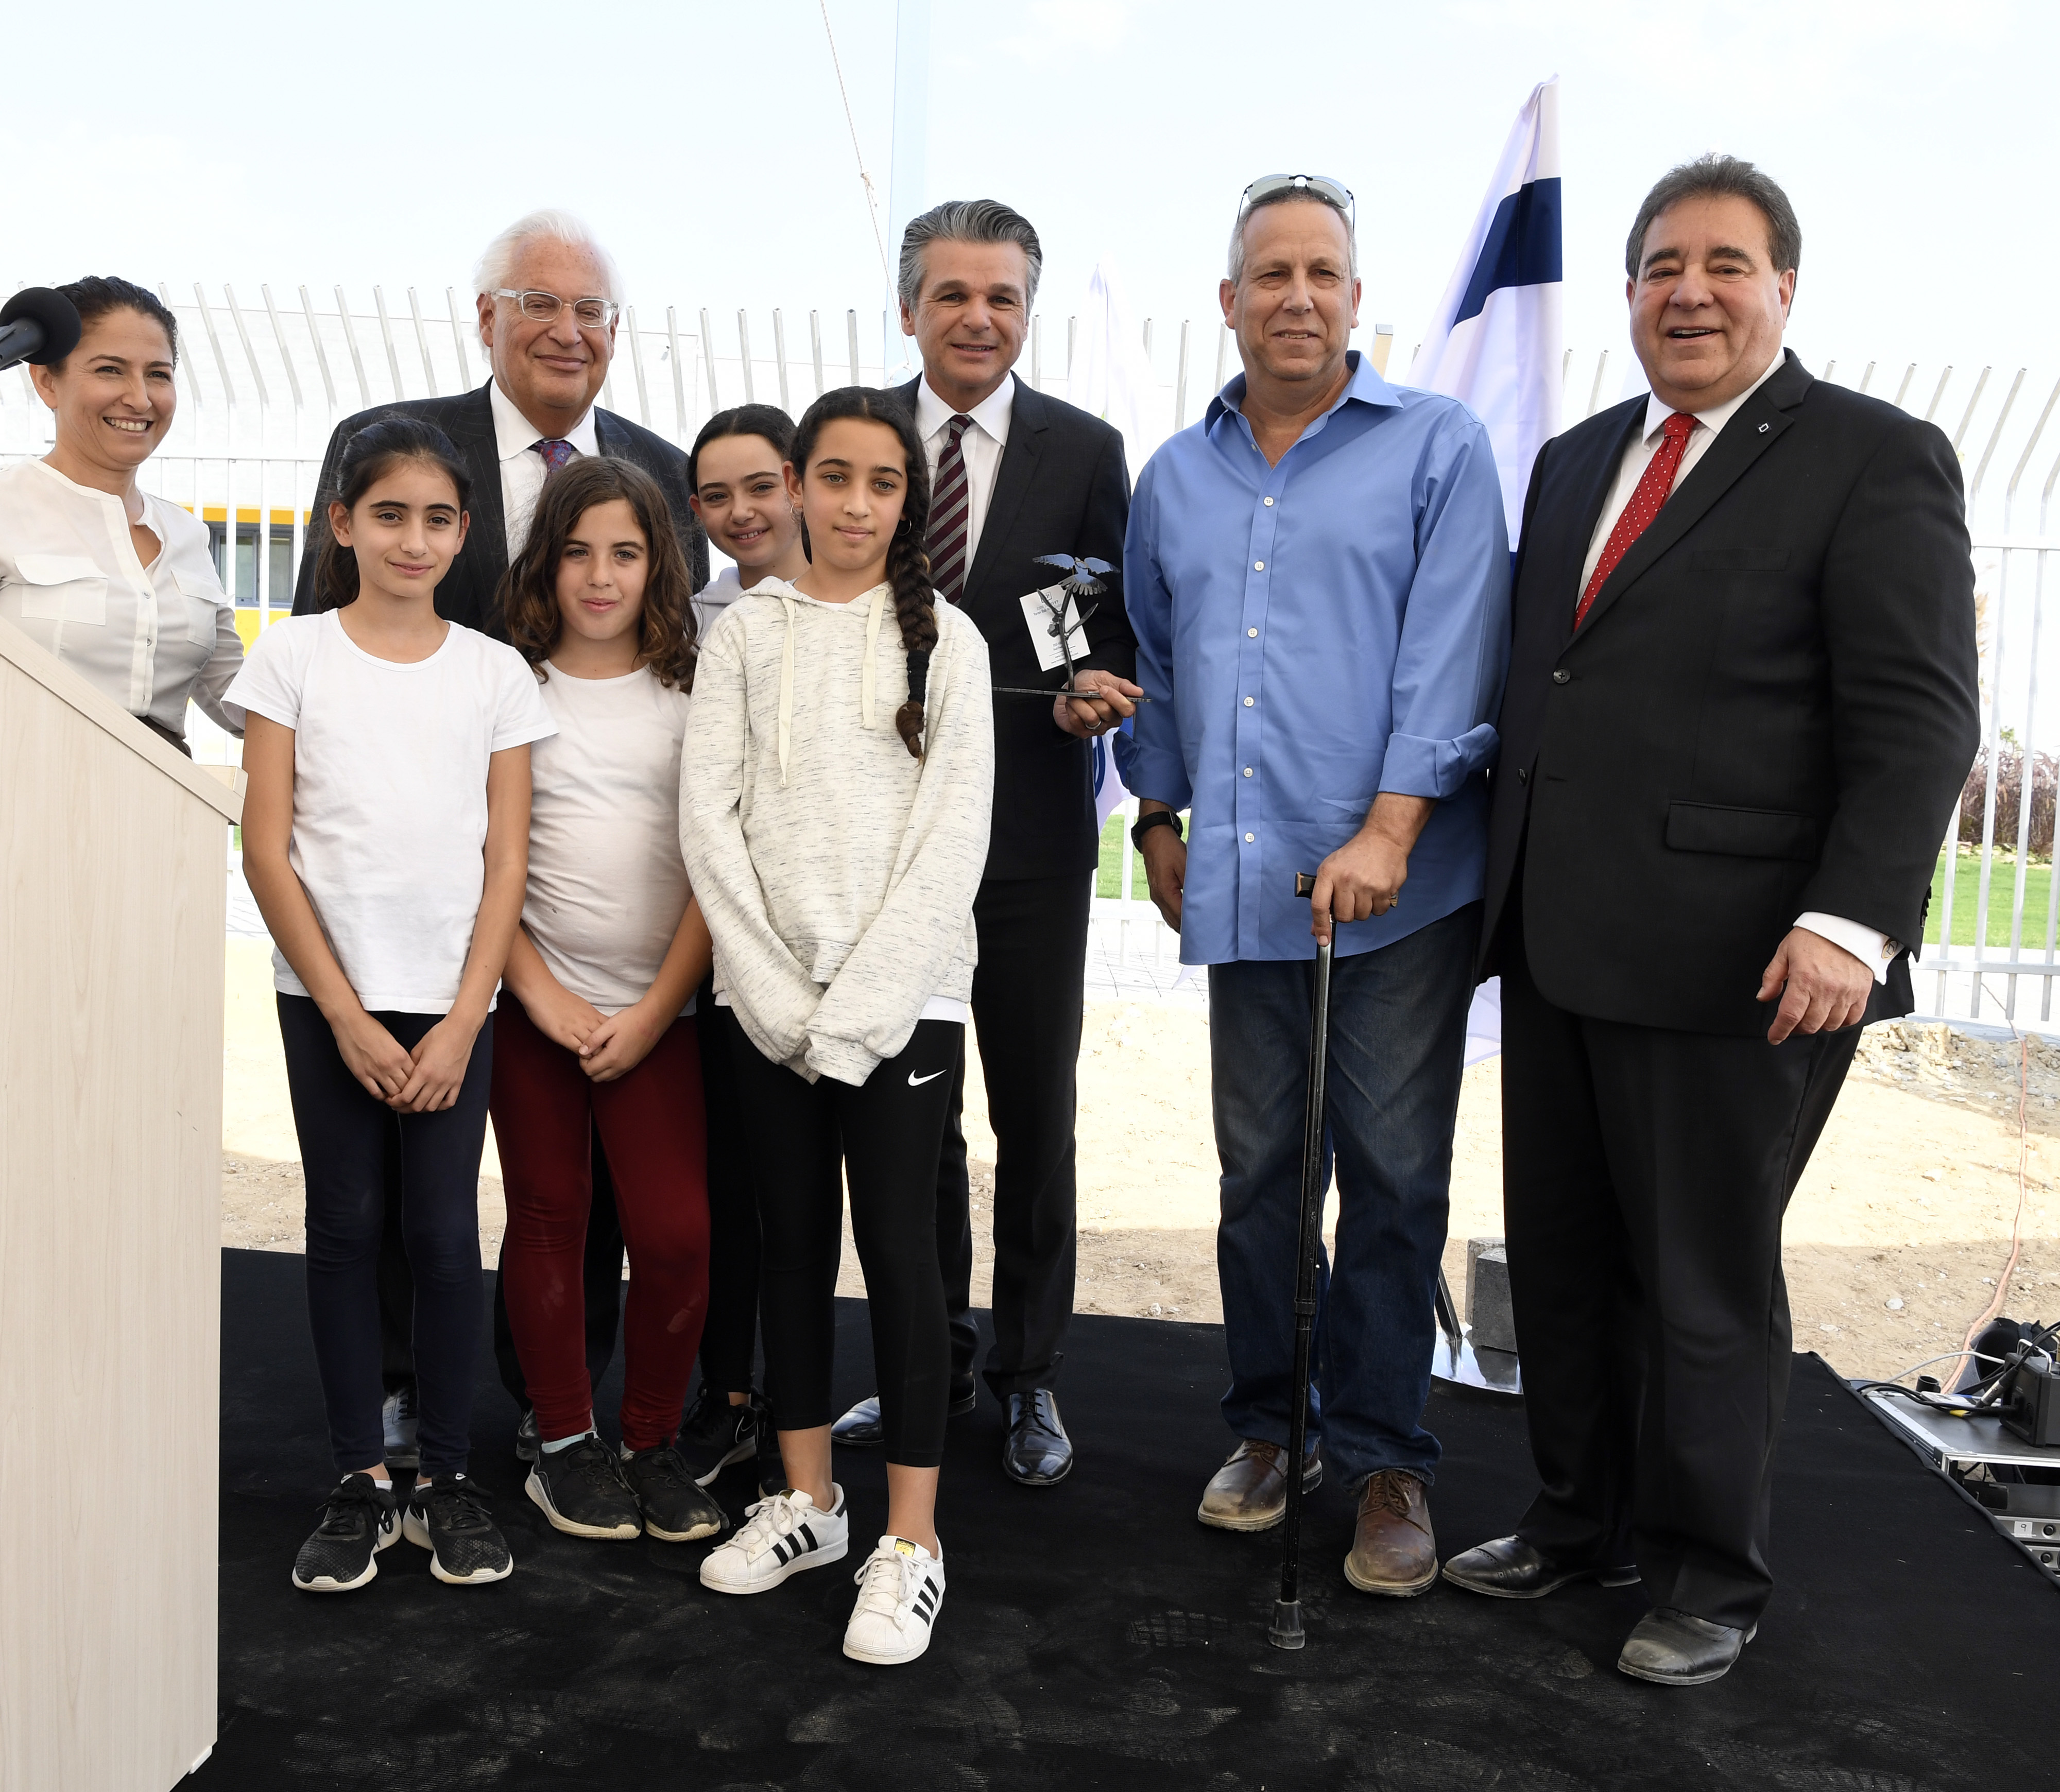 Michal Uziyahu, Eshkol Director of Community Centers, Ambassador David Friedman, Pastor Jentezen Franklin, Eshkol Mayor Gadi Yarkoni, and JNF-USA CEO Russell Robinson join children from the Eshkol region in dedicating the new Playschool. (Credit: JNF-USA)